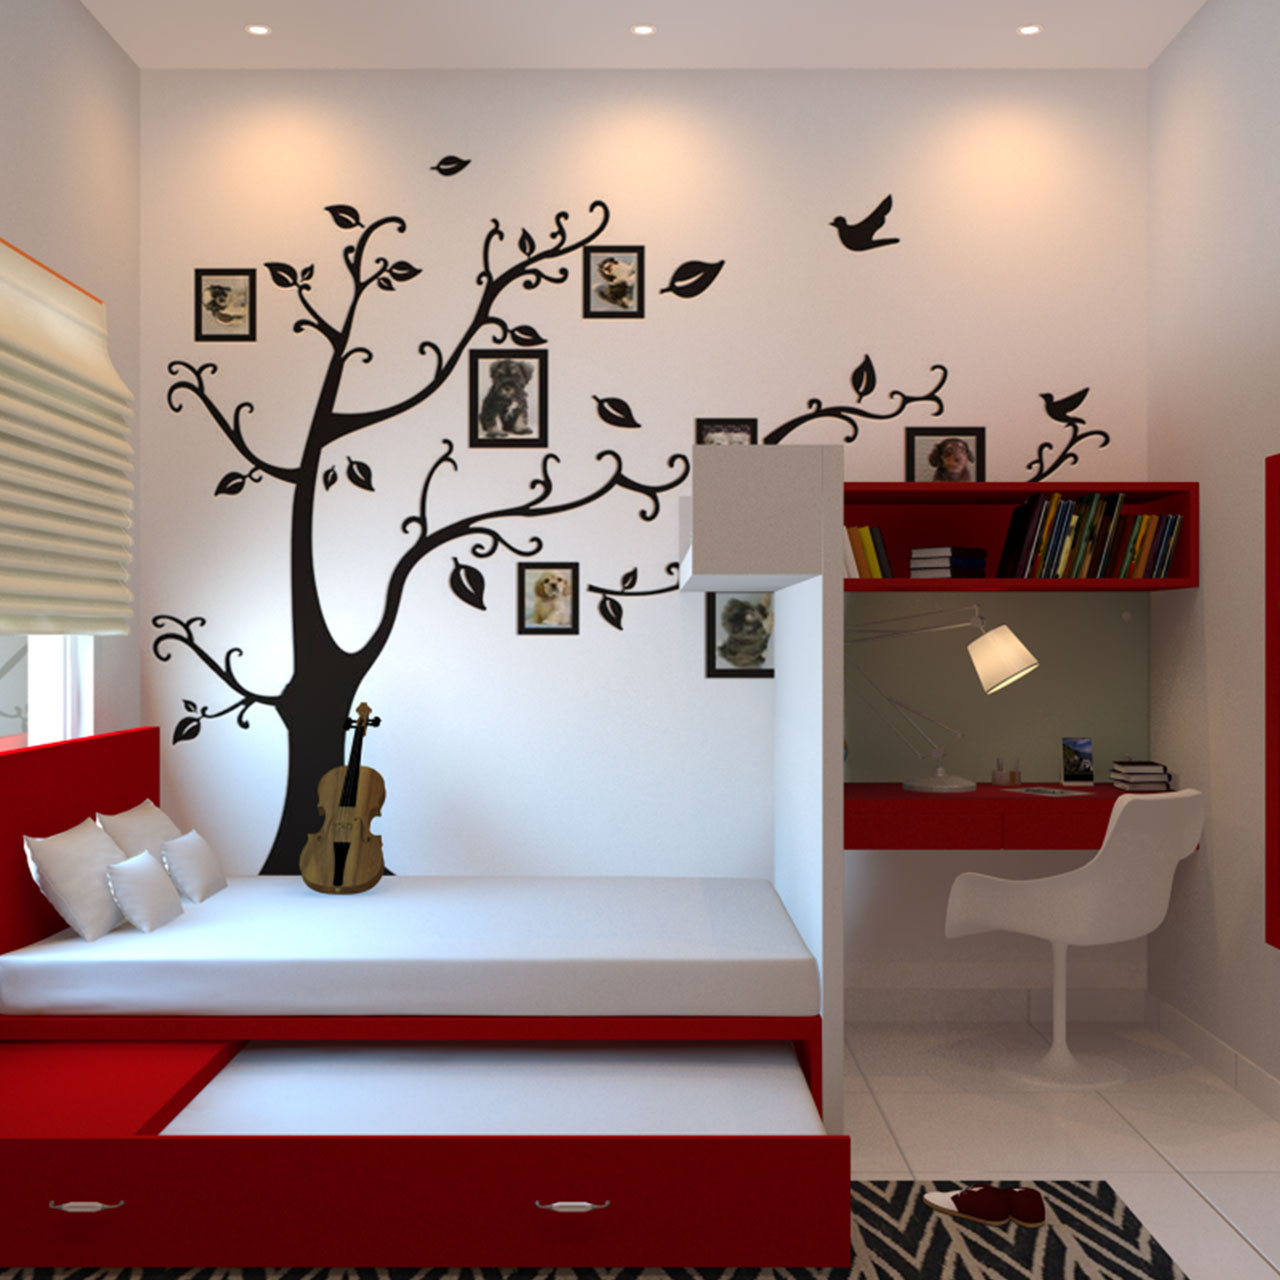 Childrens bedroom furniture where they learn more from subtle influences than actually being taught anything in kids bedroom design